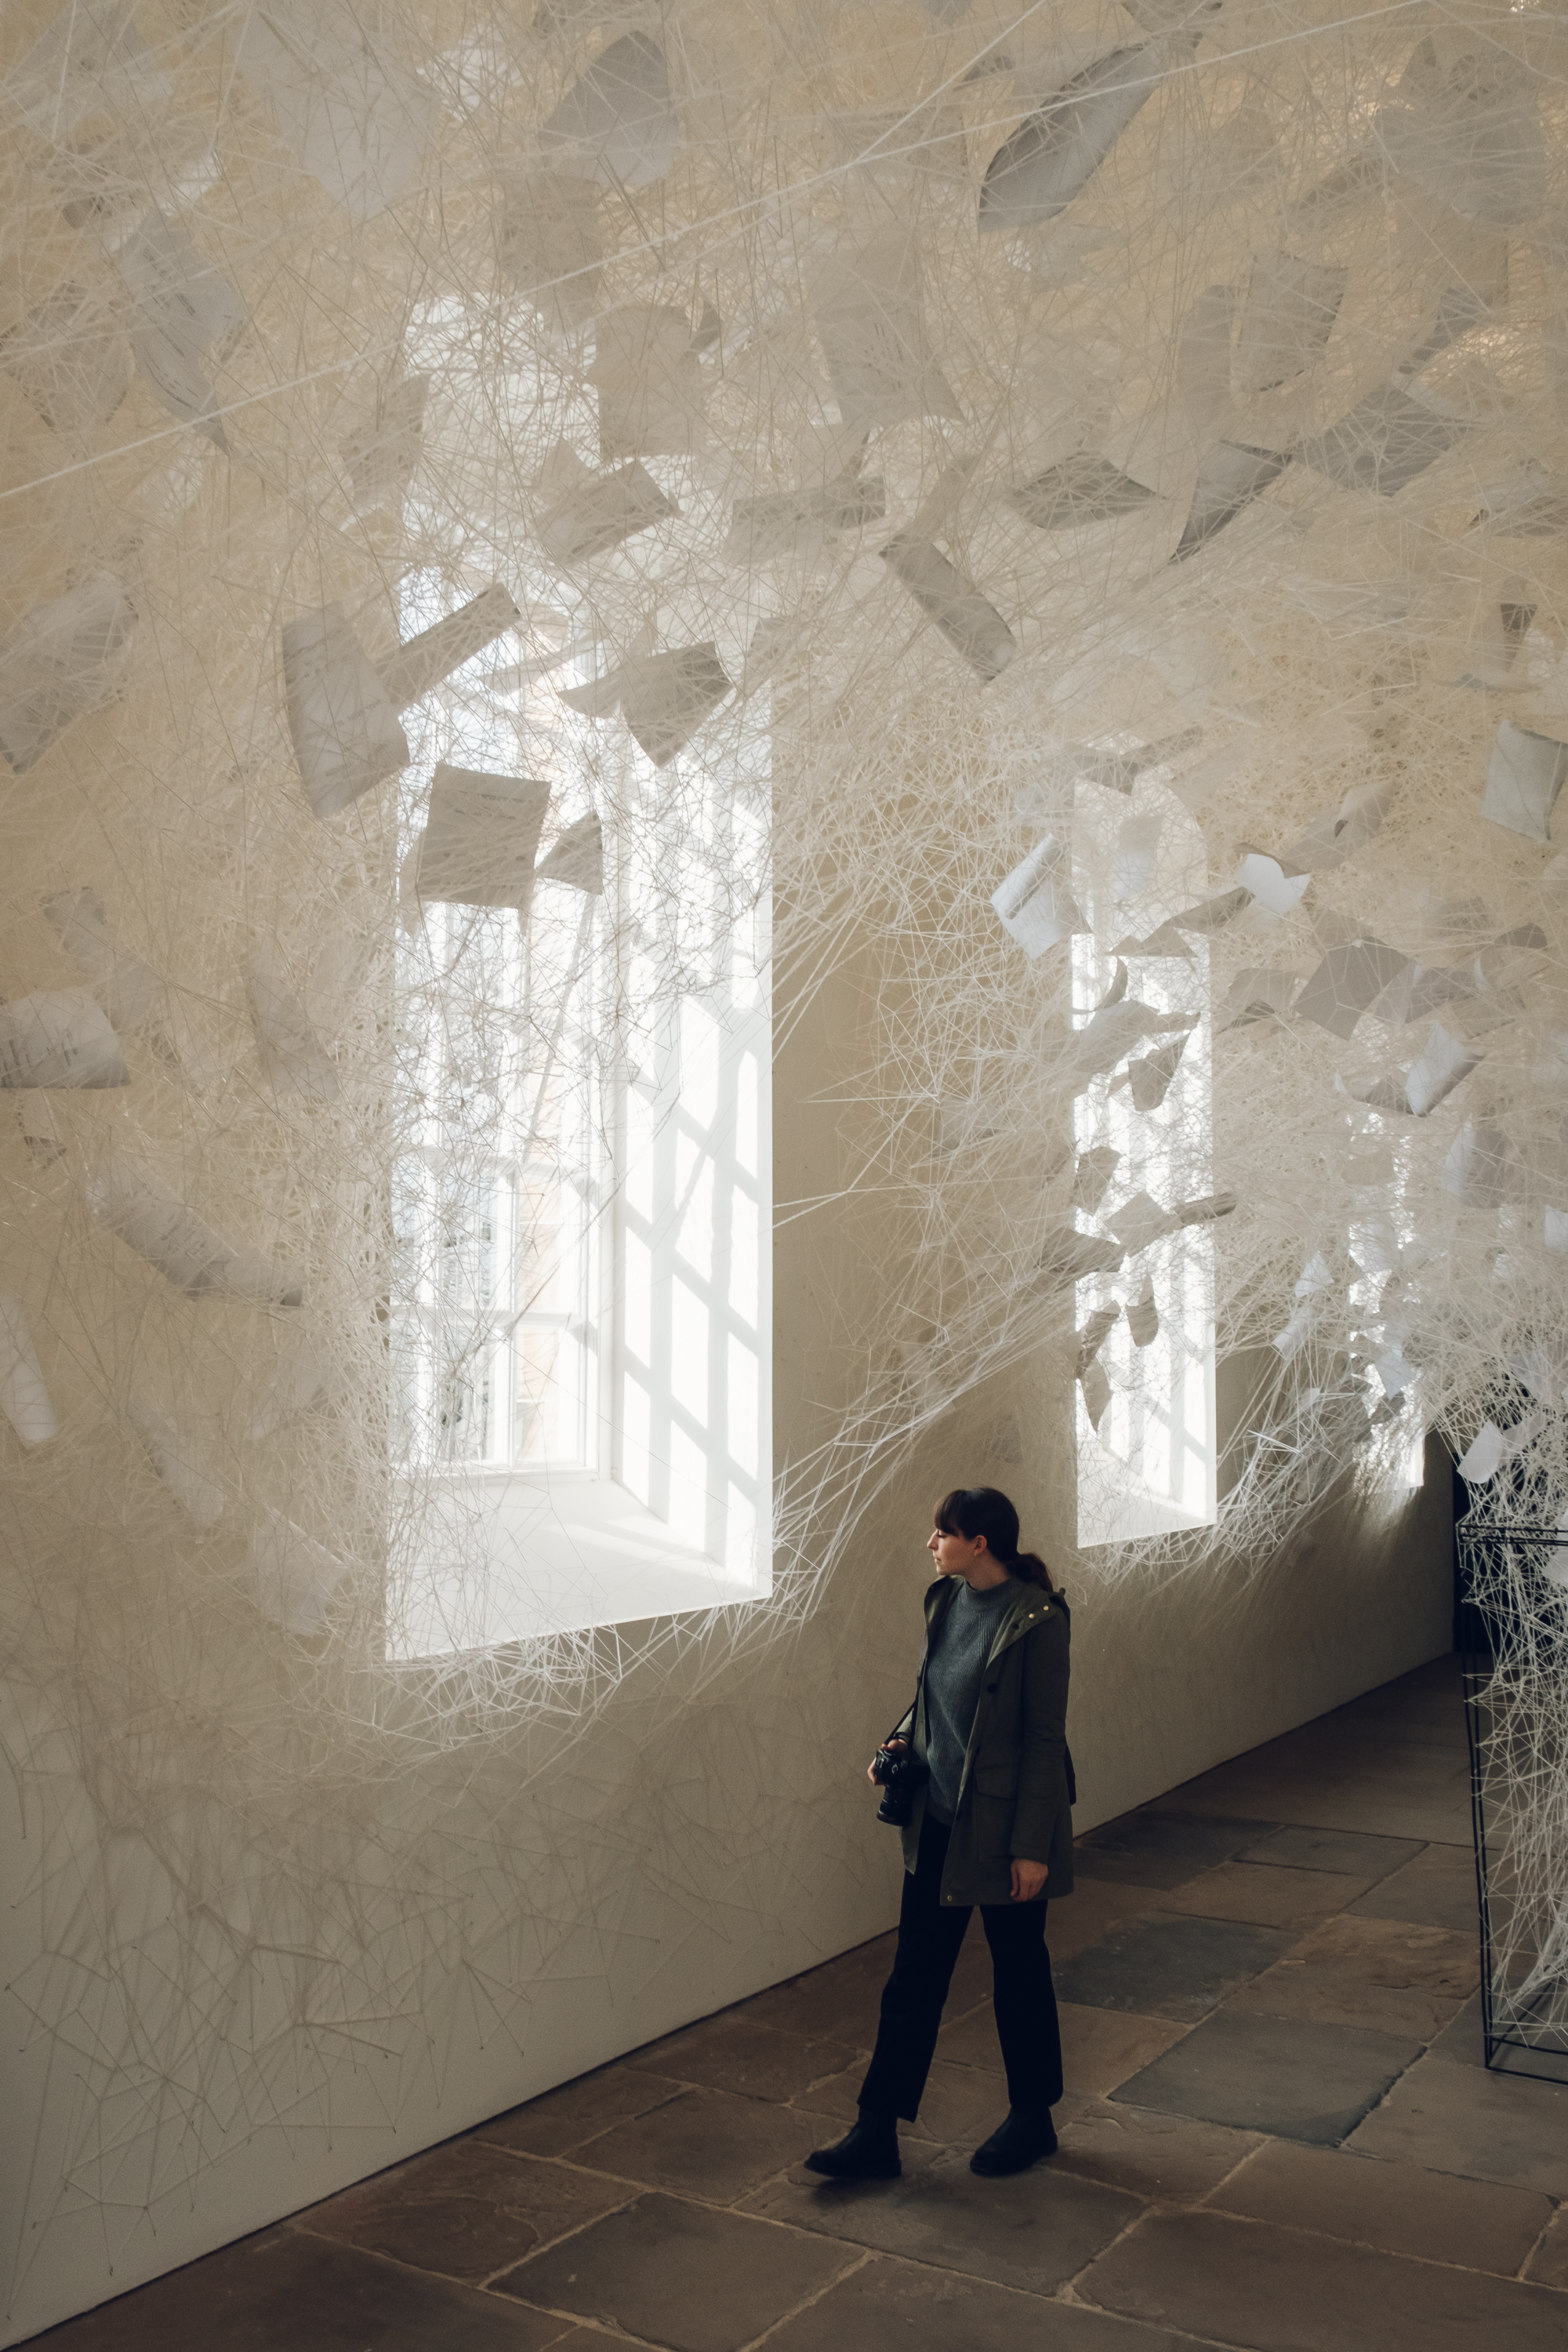 Chiharu Shiota 'Beyond Time' at Yorkshire Sculpture Park, photographed by Haarkon